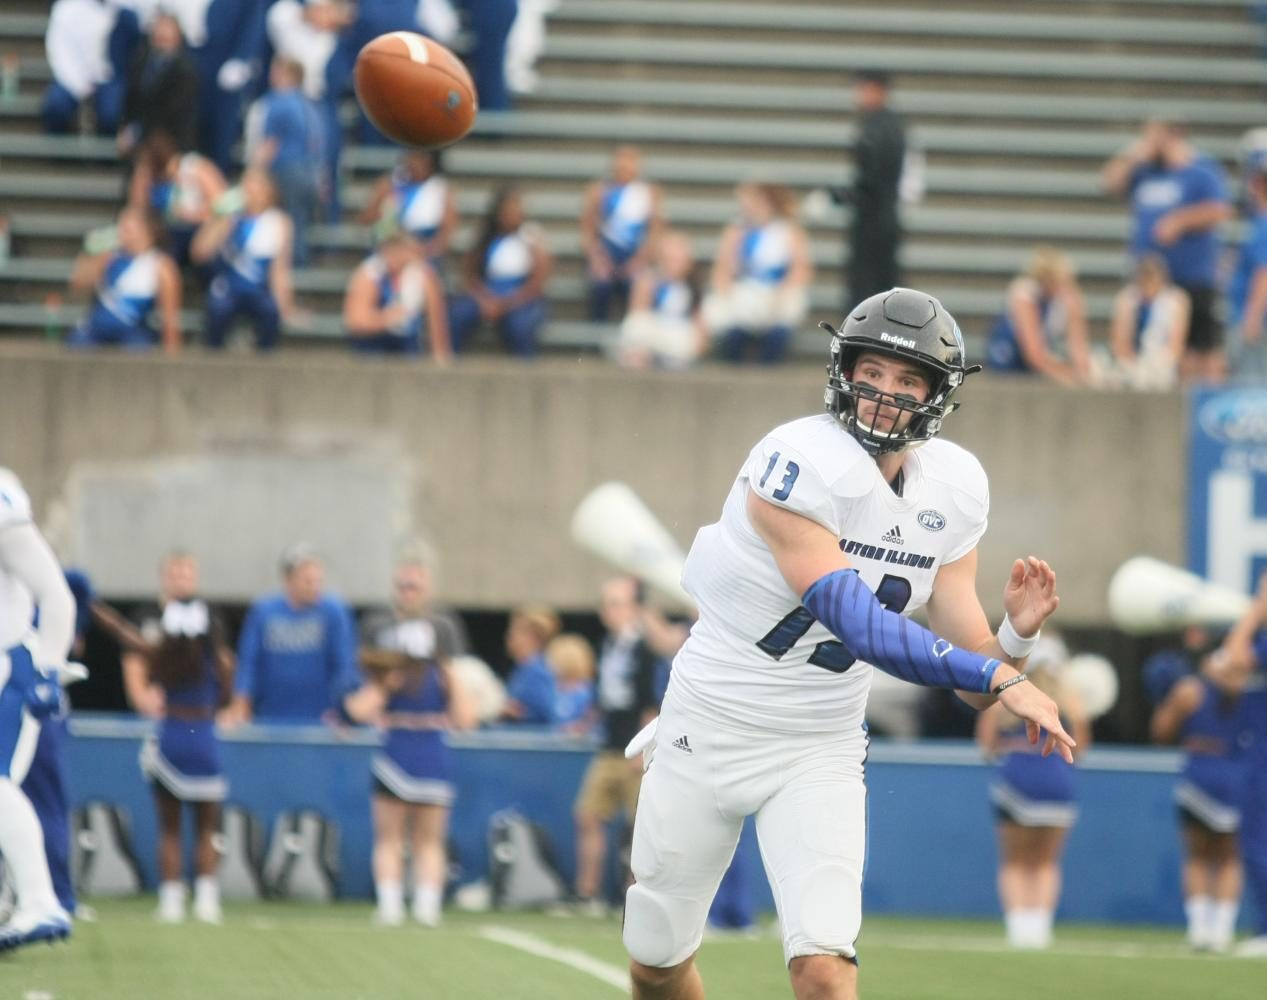 Eastern quarterback Mitch Kimble fires a pass August 31st at Memorial Stadium in Terre Haute, Indiana. Kimble threw a game-winning touchdown pass to lead the Panthers over Indiana State 22-20.